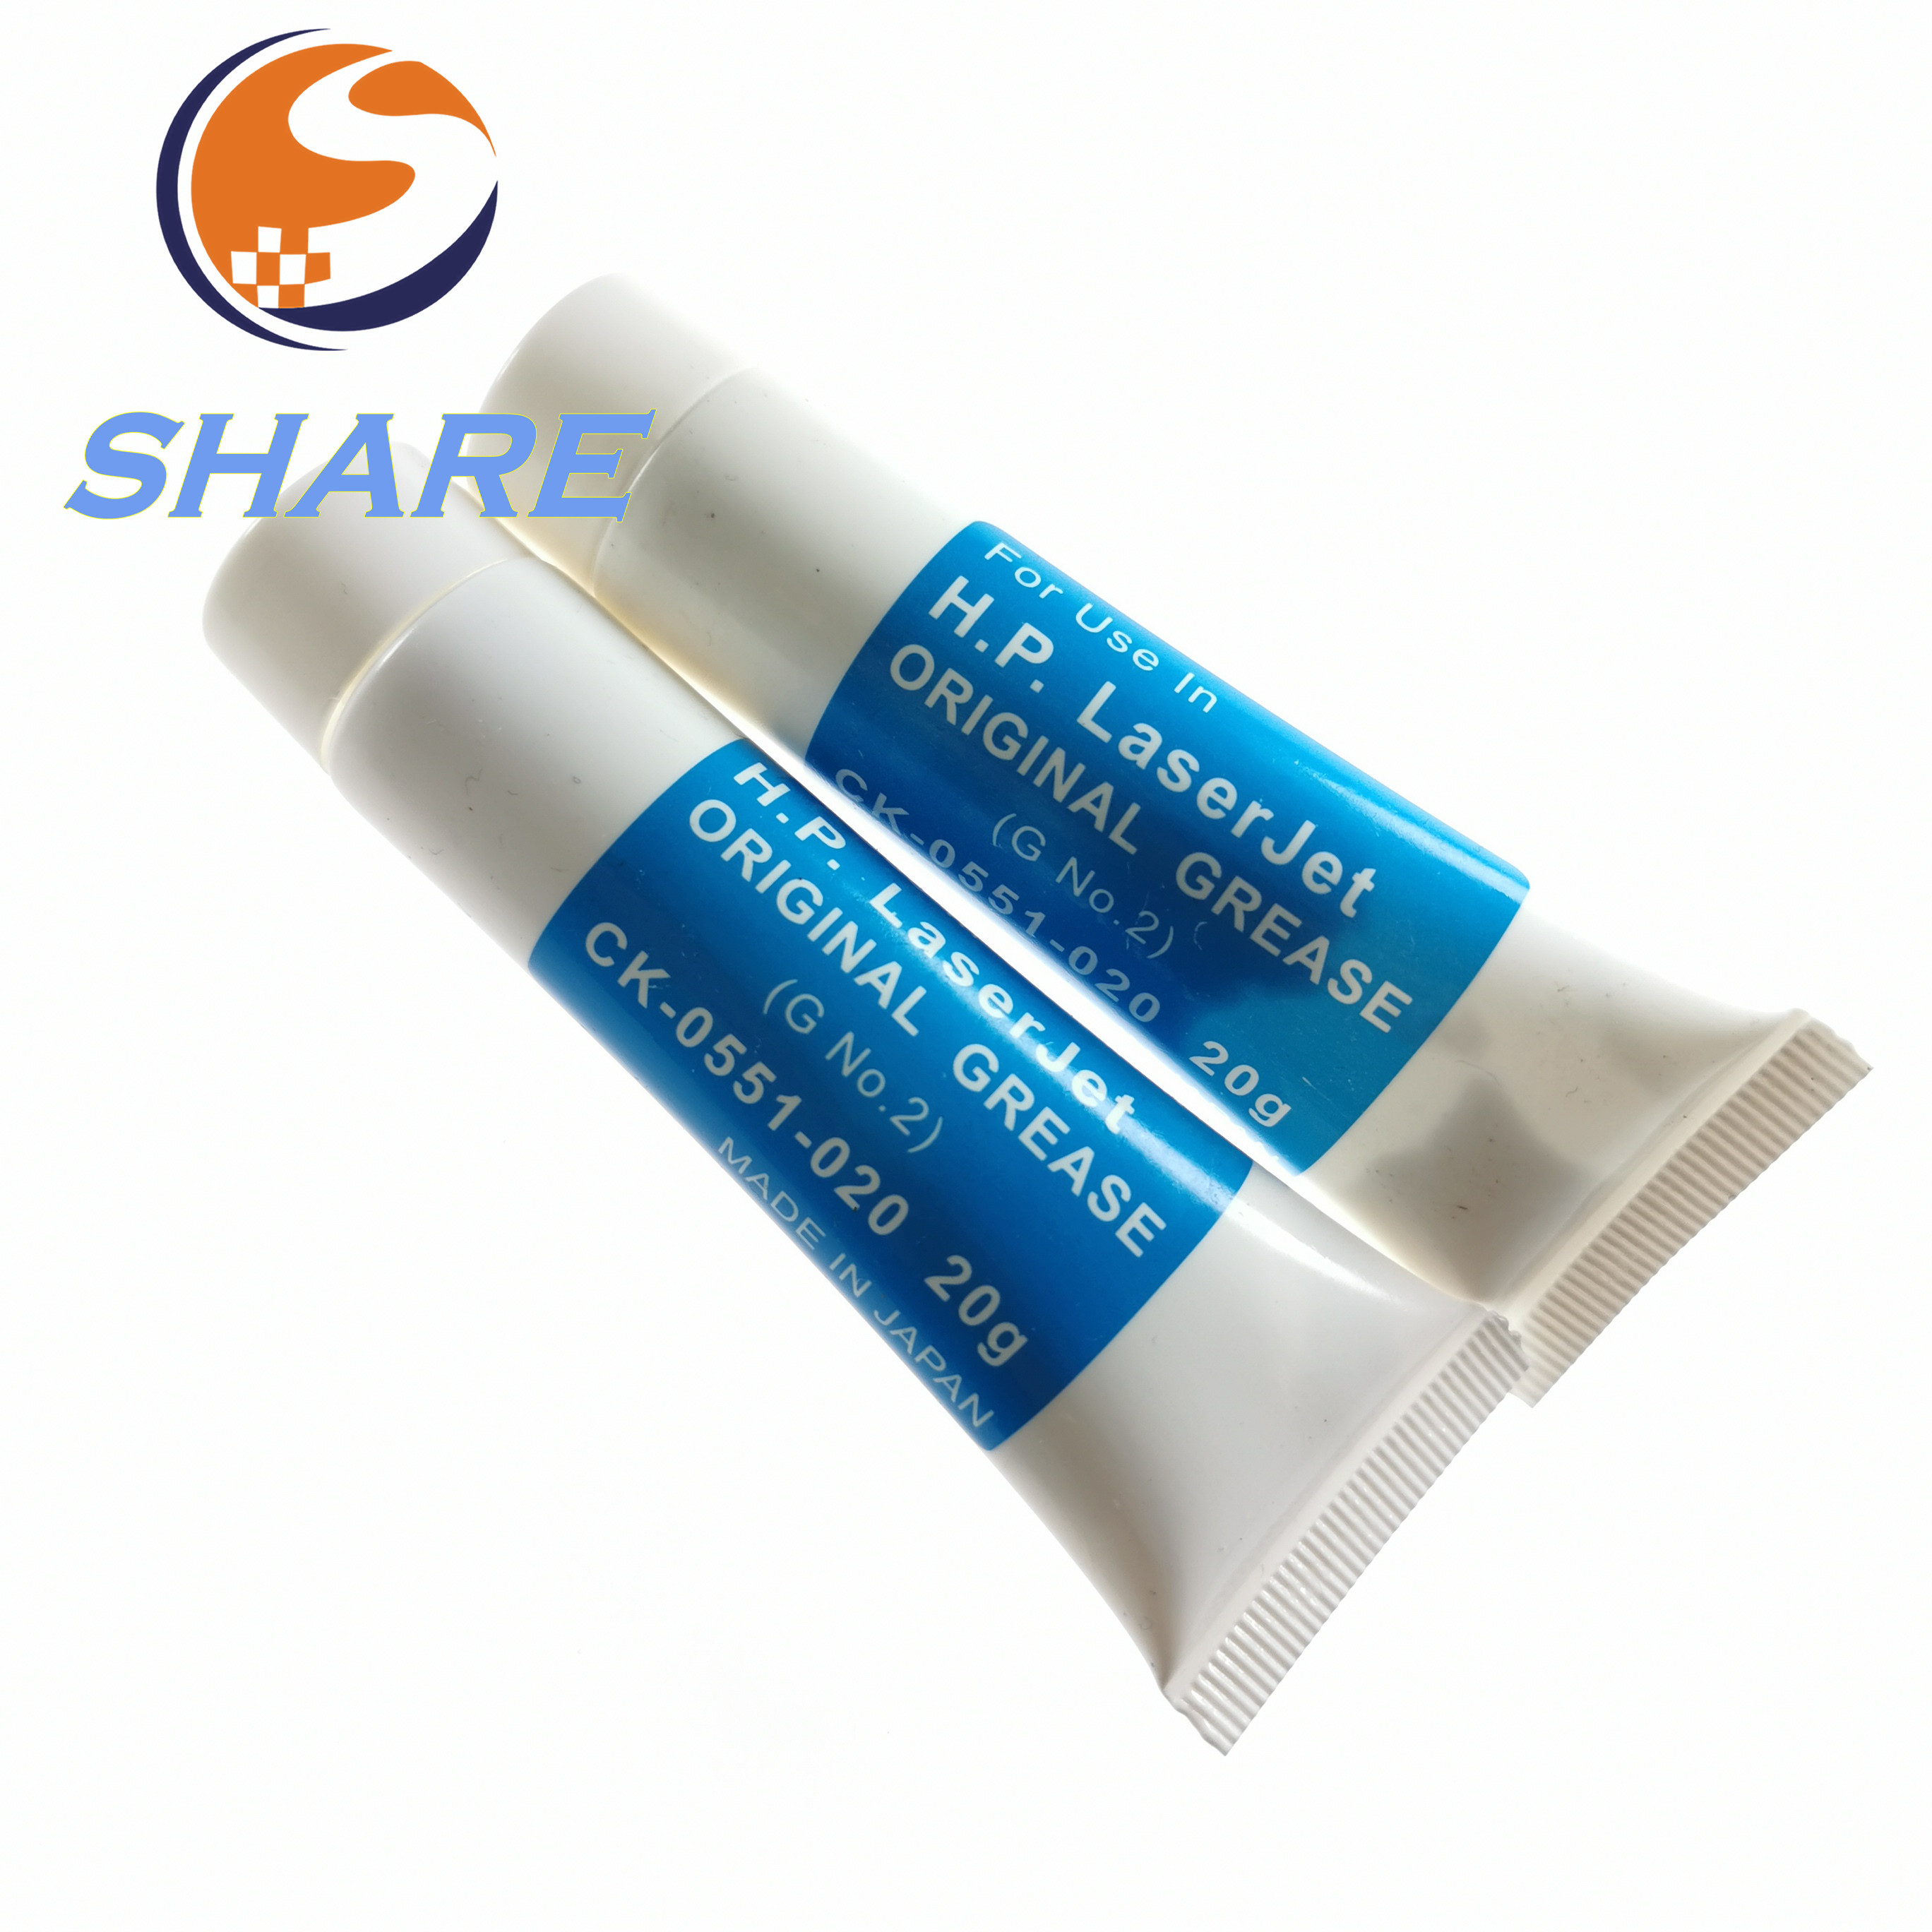 SHARE 1 PS CK-0551-020 FY9-6022-000 CK-0551-000 FLOIL G500 20g Lubricant Permalub G-2 Silicone Grease Fuser Film Grease Oil